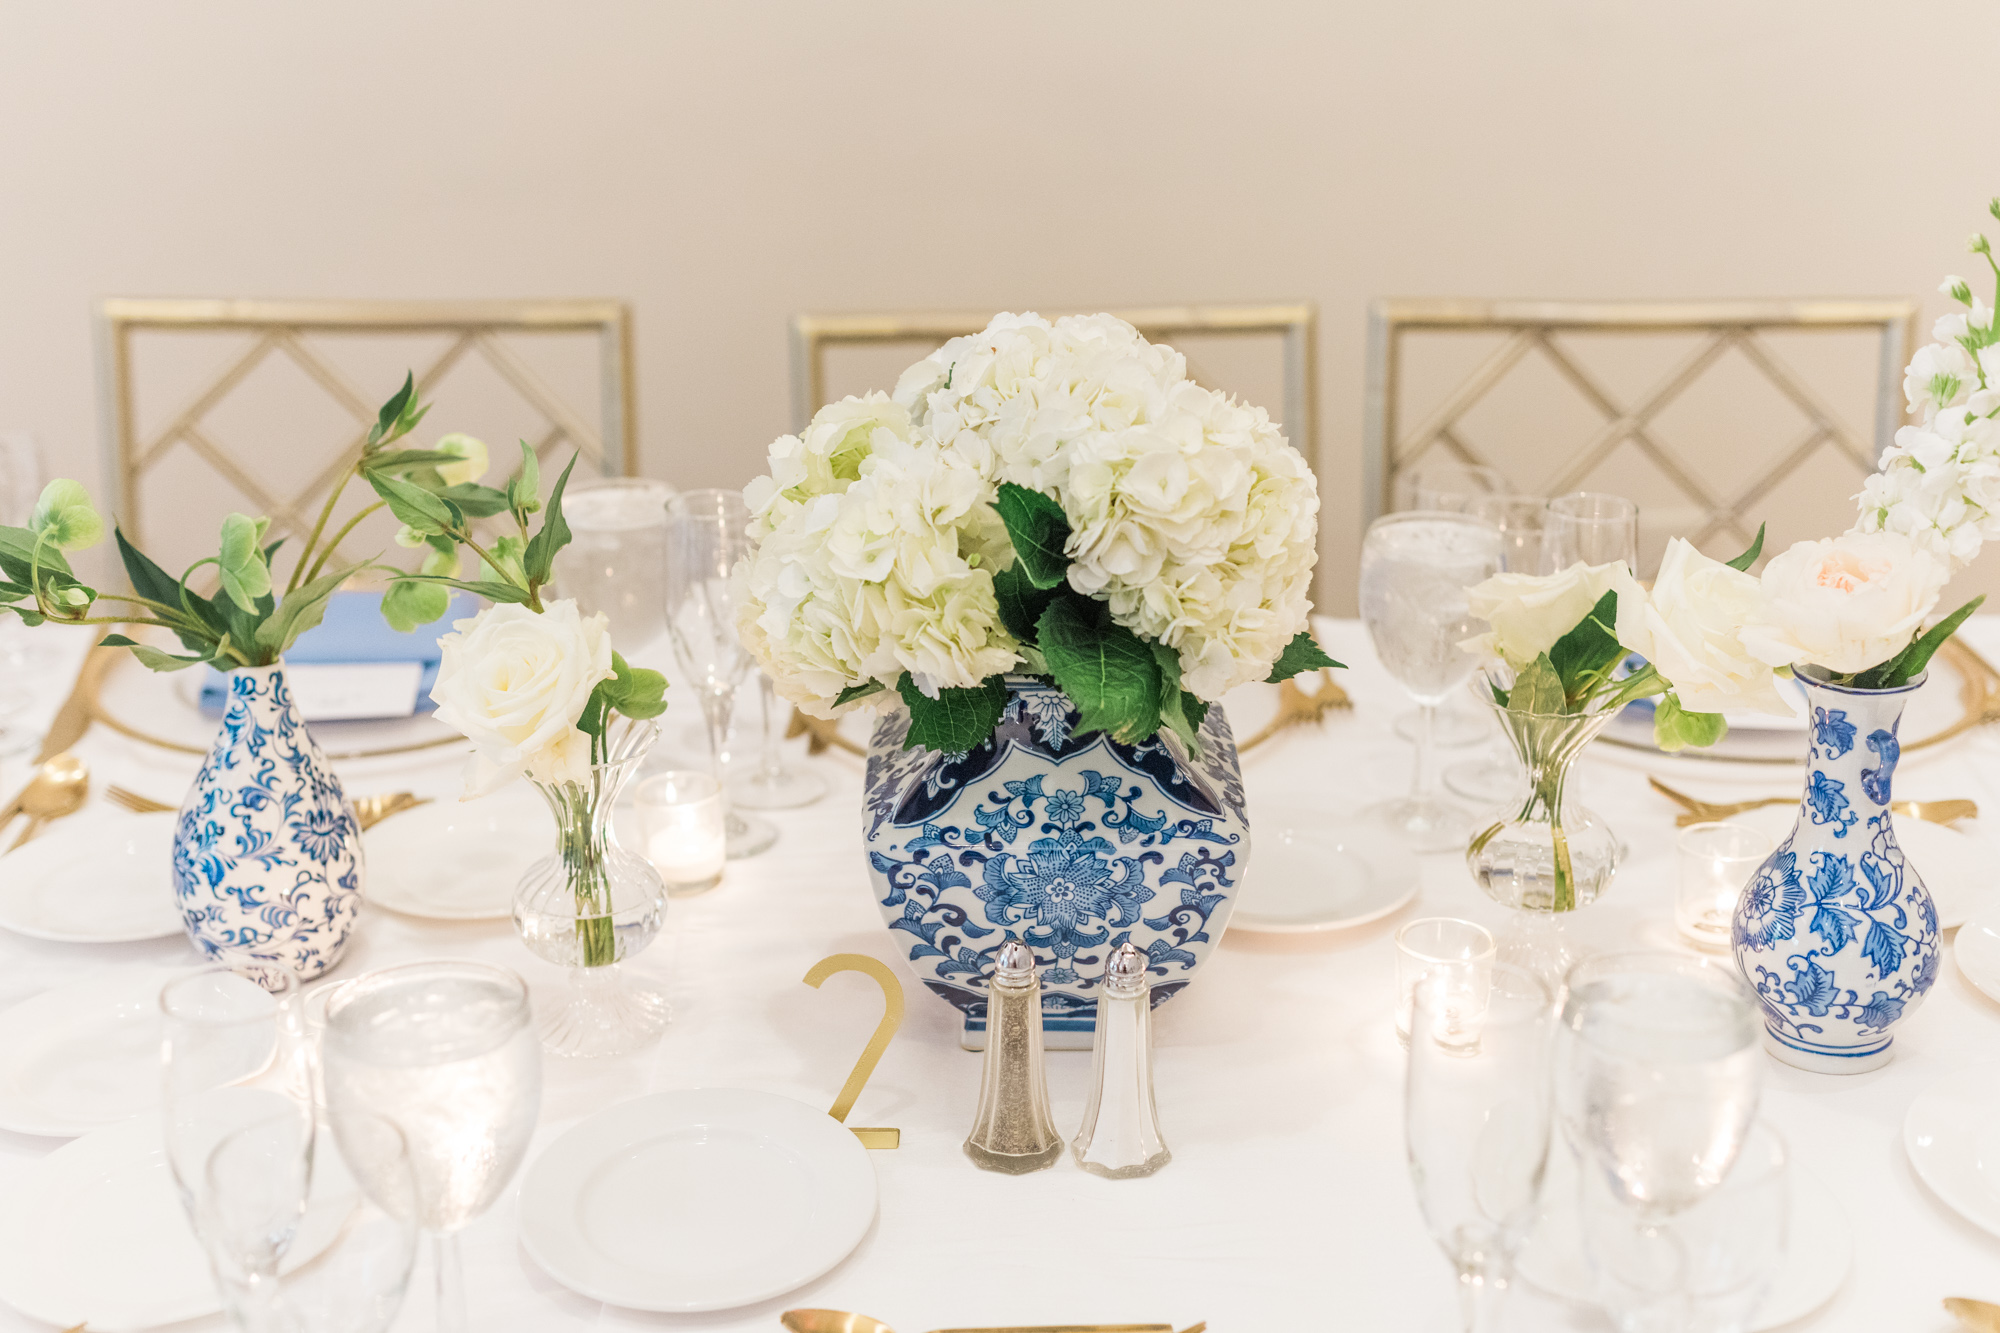 Blue and White Ginger Jar Table Setting Washington DC Chinoiserie Wedding Plume Photography